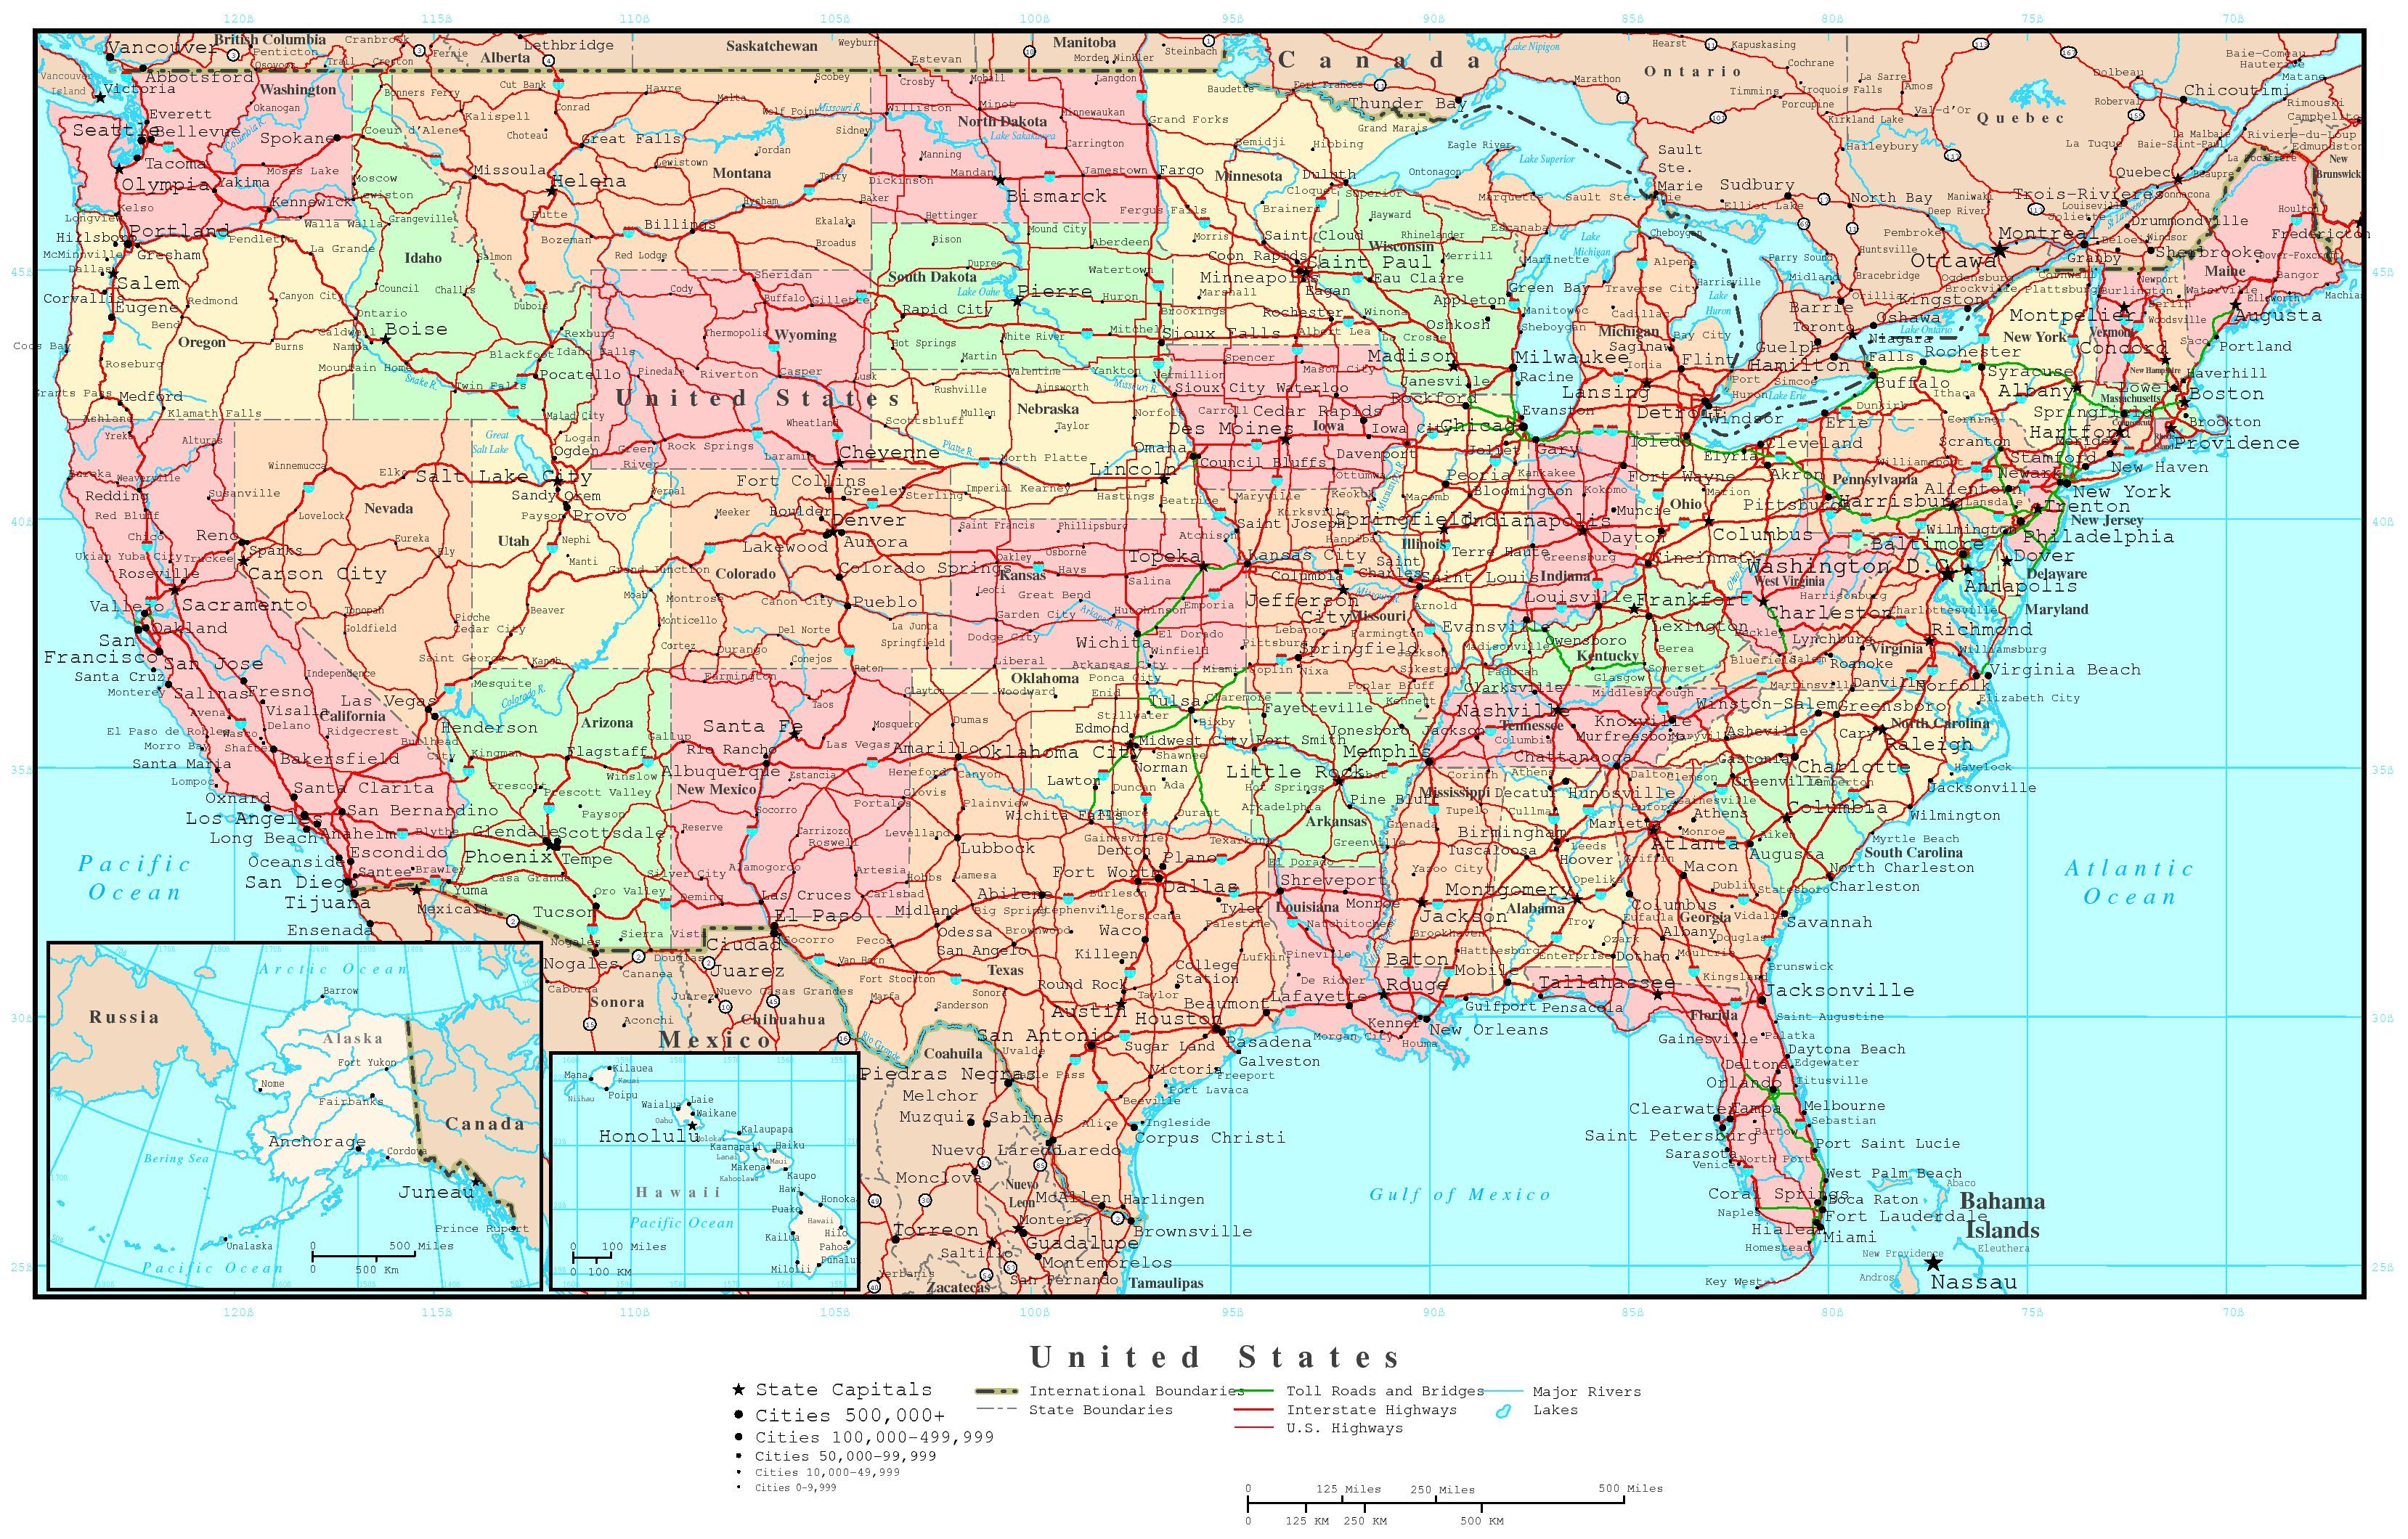 LargedetailedpoliticalandroadmapofUSAjpg - Travel map us